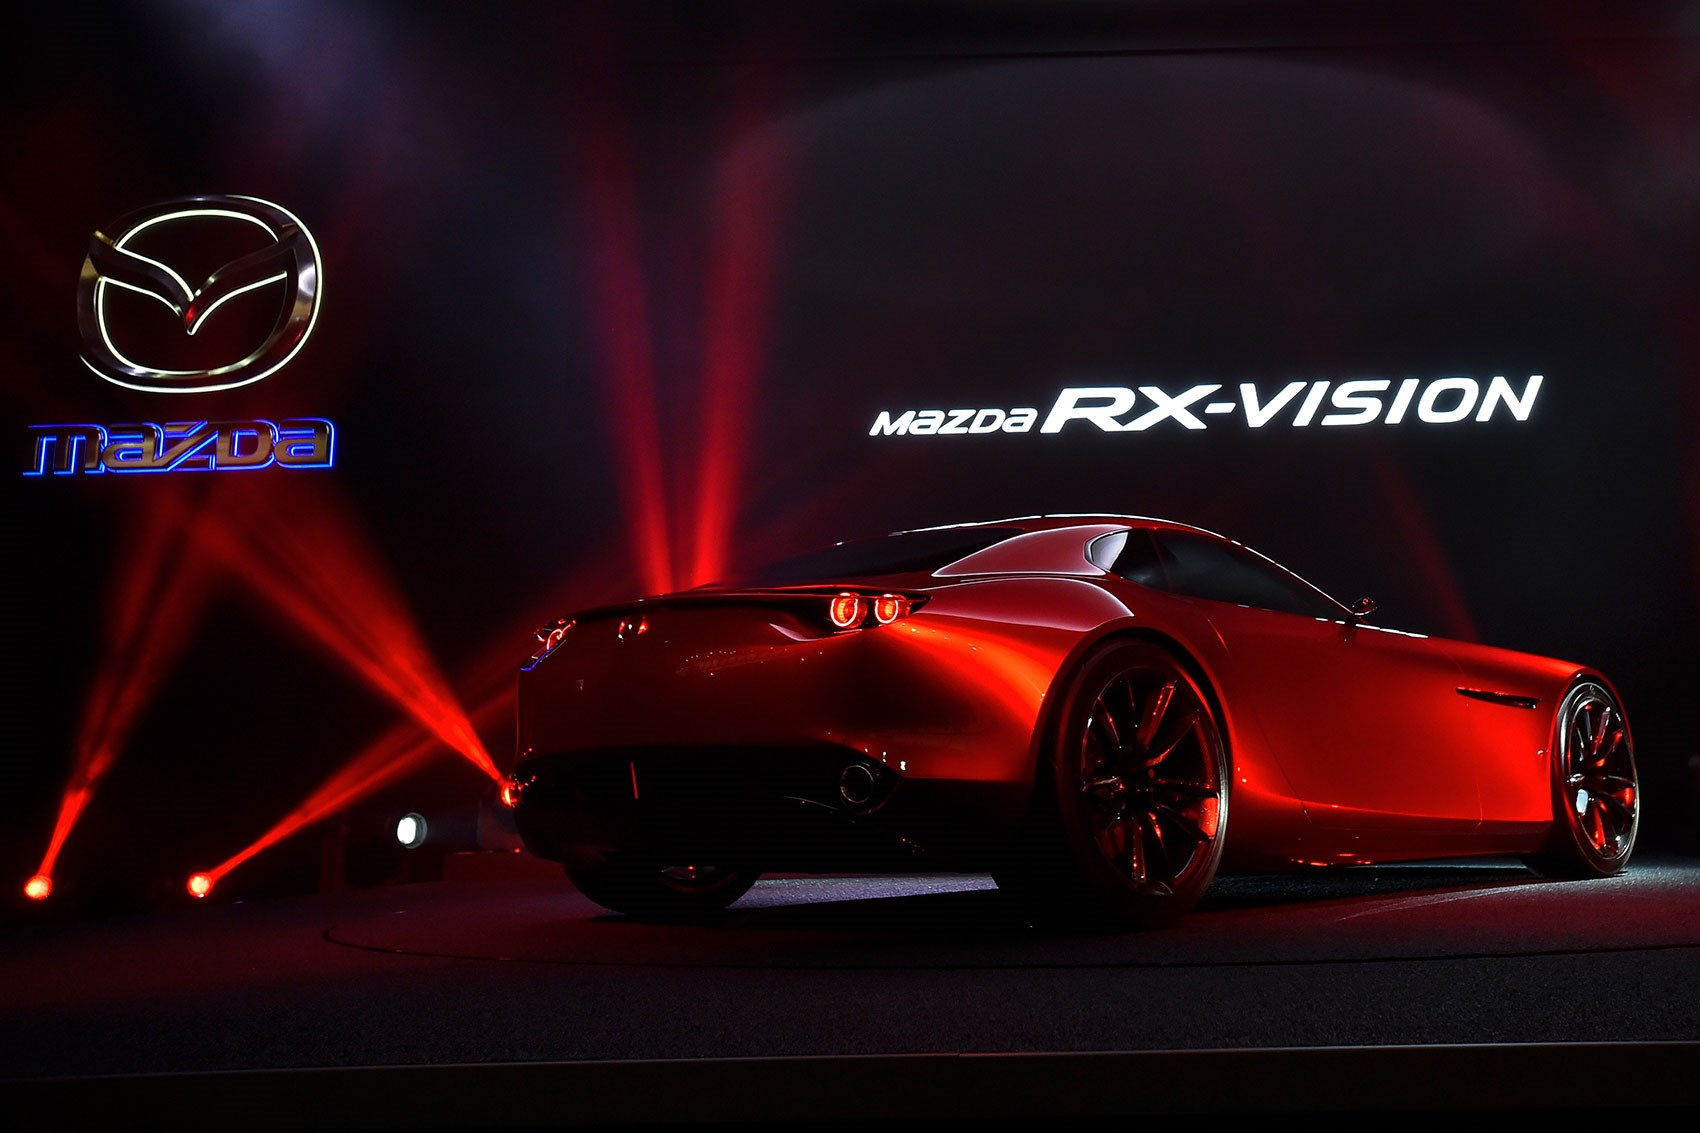 mazda rx vision concept car spins in to the 2015 tokyo motor show car magazine. Black Bedroom Furniture Sets. Home Design Ideas